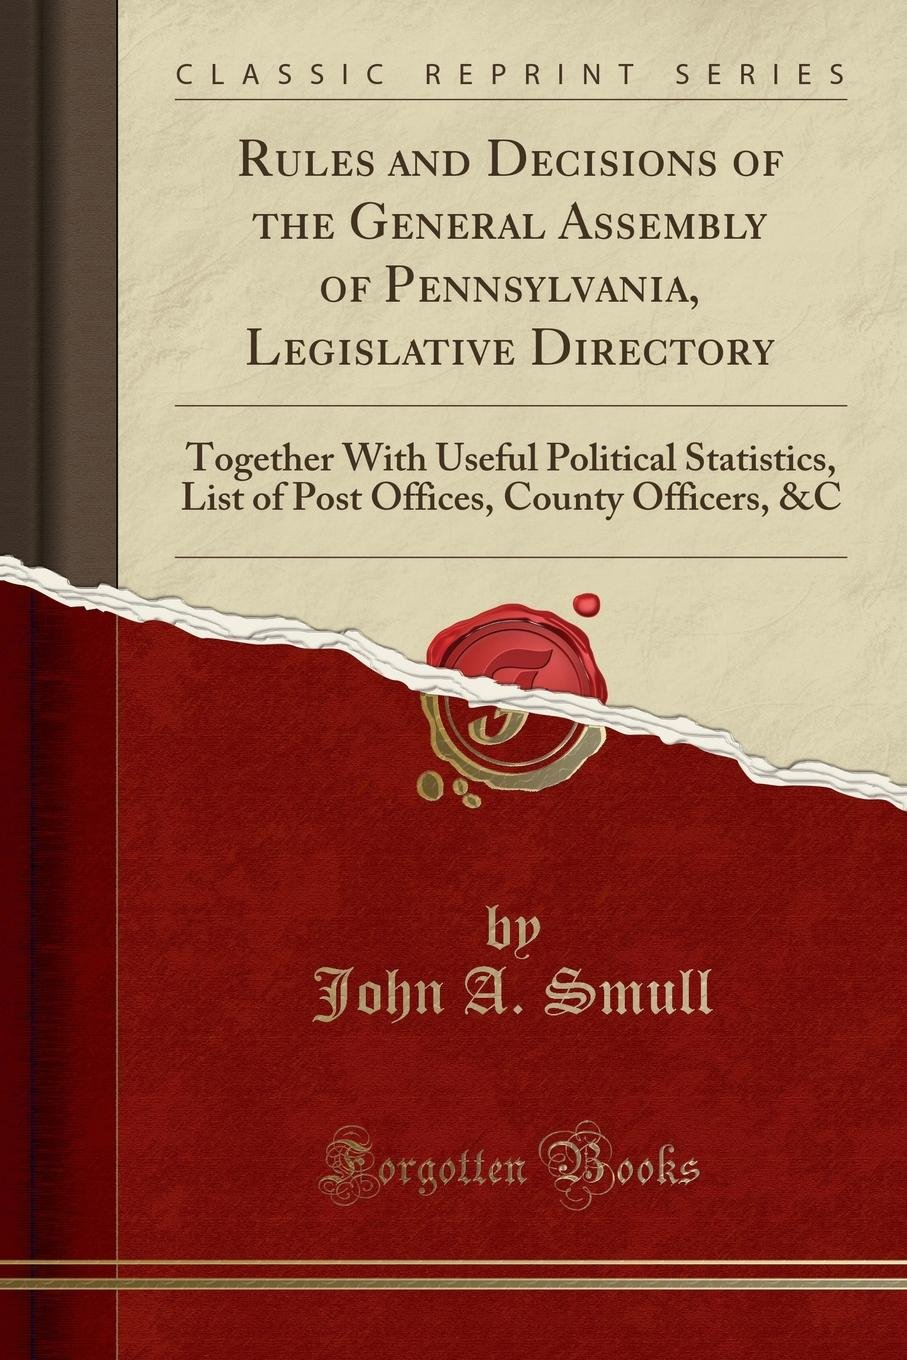 Download Rules and Decisions of the General Assembly of Pennsylvania, Legislative Directory: Together With Useful Political Statistics, List of Post Offices, County Officers, &C (Classic Reprint) pdf